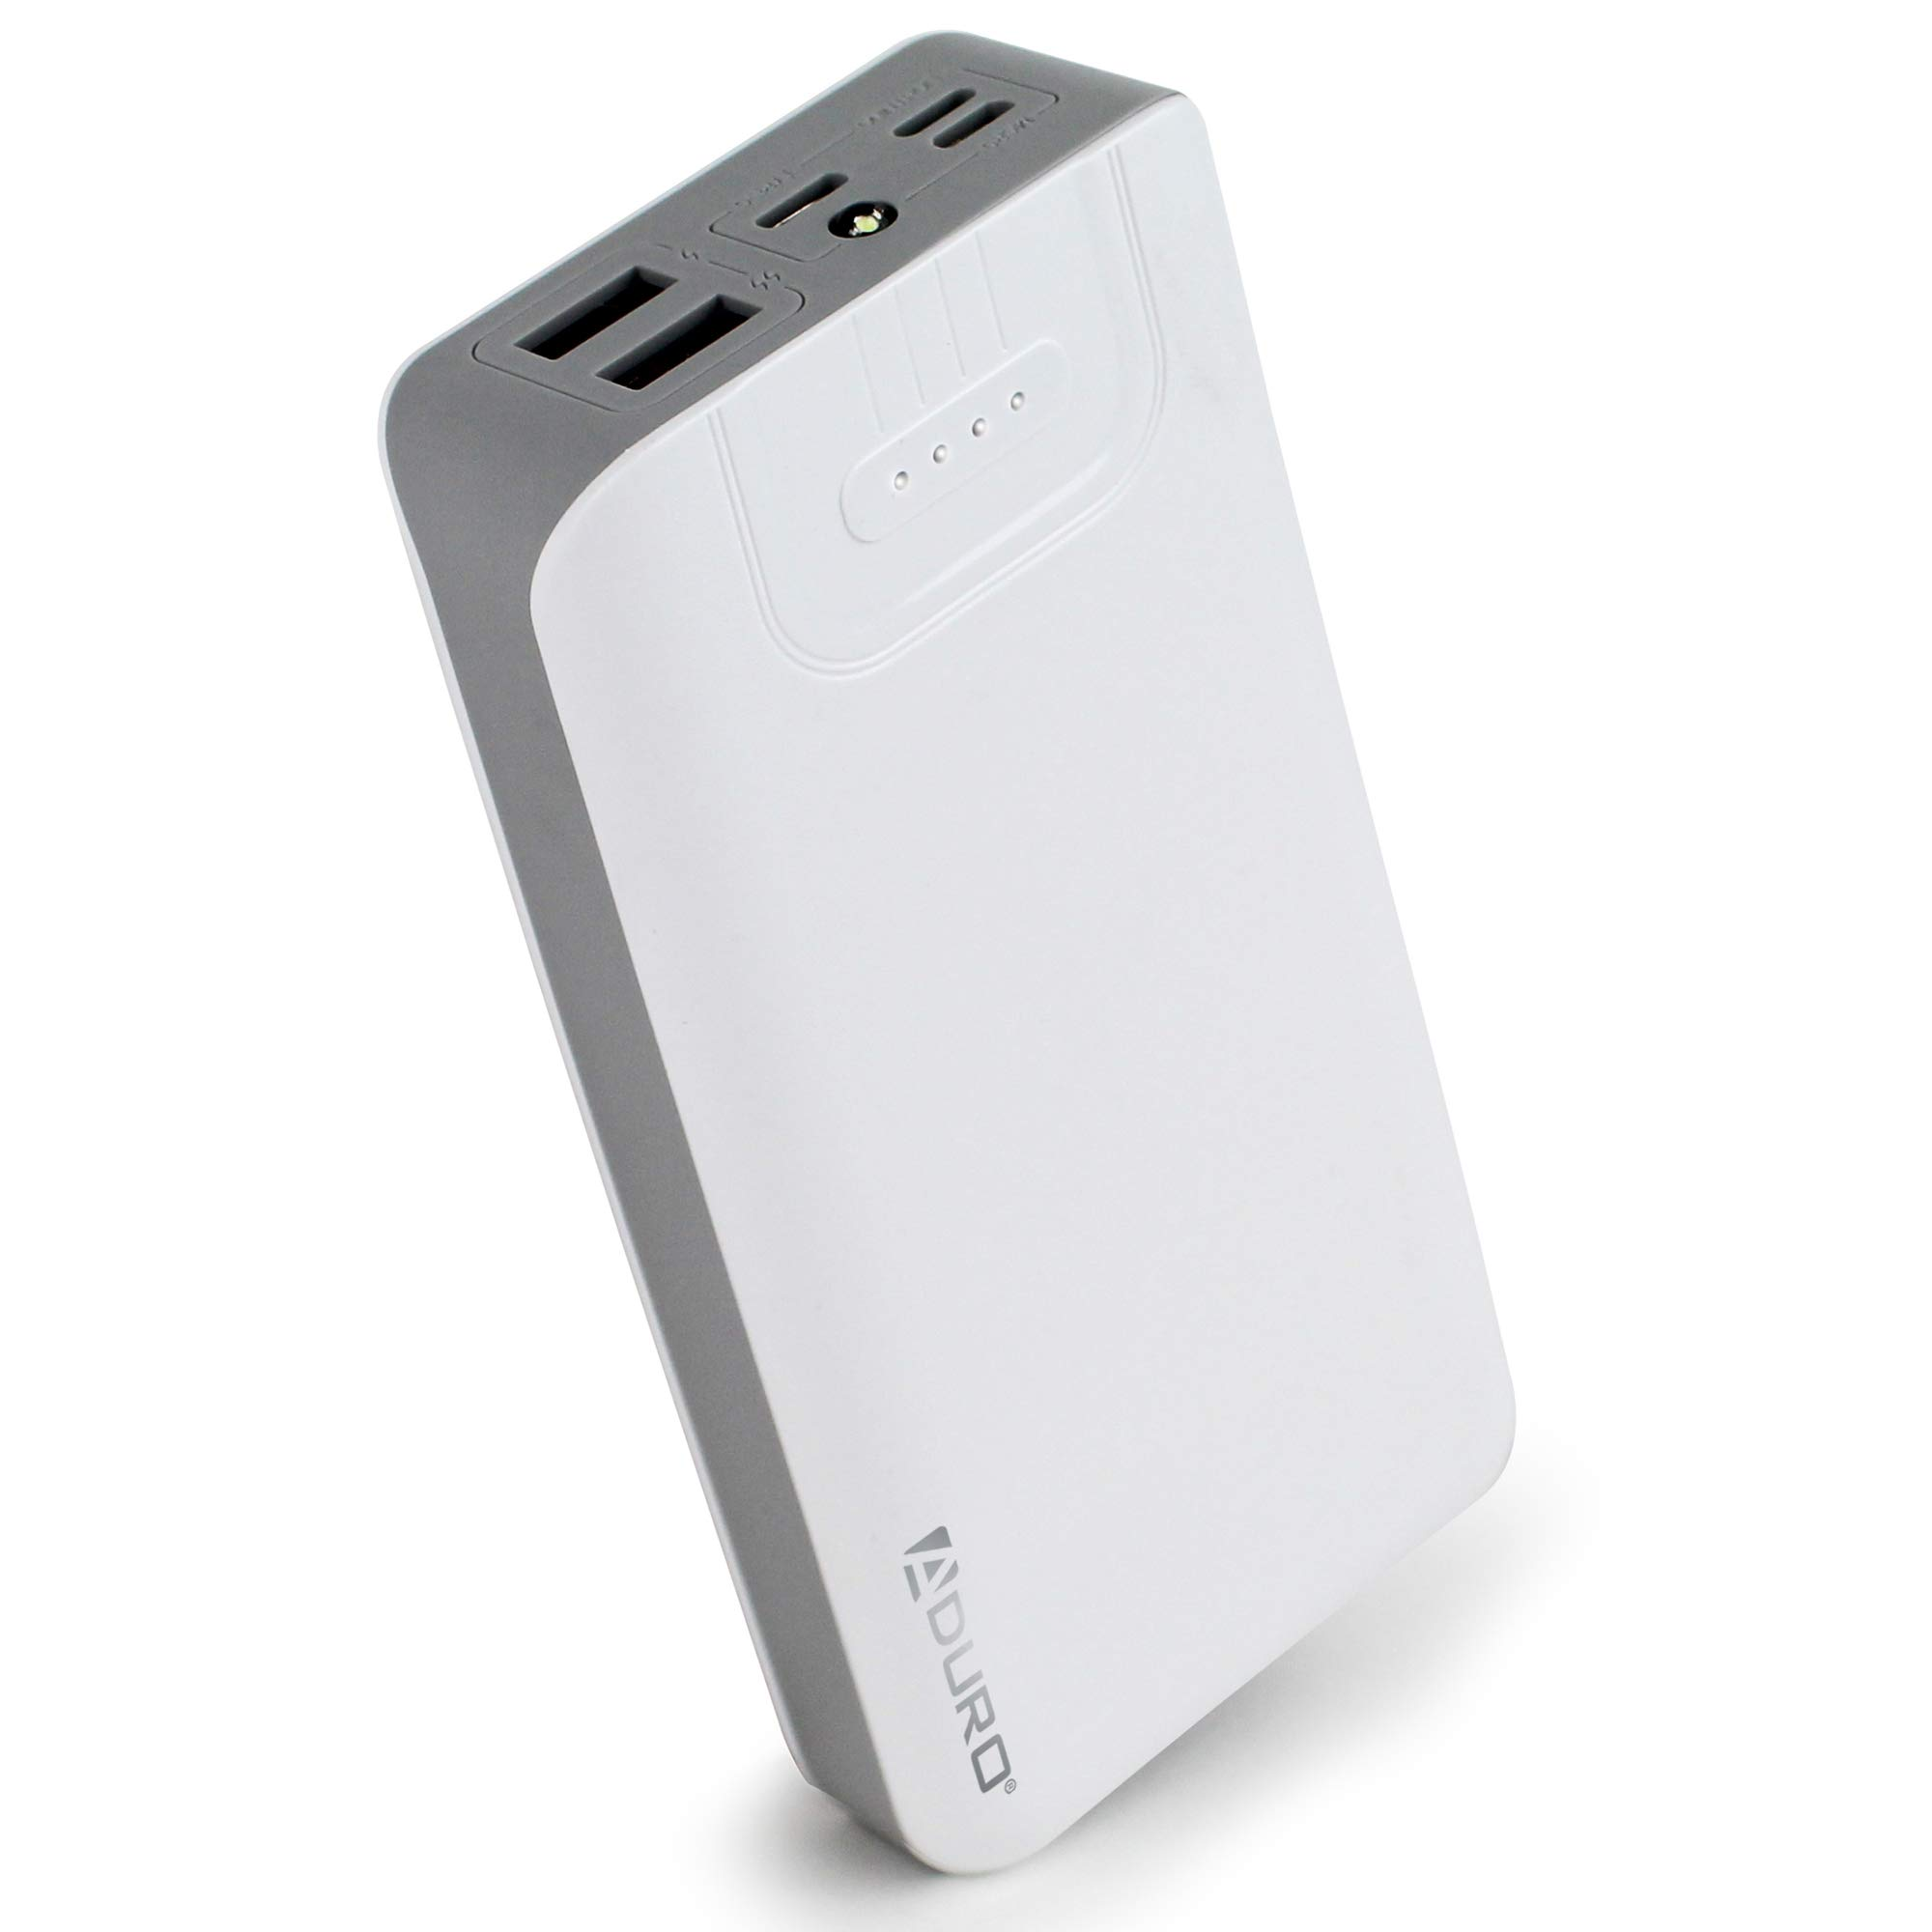 Amazon.com: Aduro Portable Charger Power Bank 20,000mAh External Battery  Pack Phone Charger for Cell Phones with Dual USB Ports for iPhone, iPad,  Samsung Galaxy, Android, and USB Devices (White/Grey)